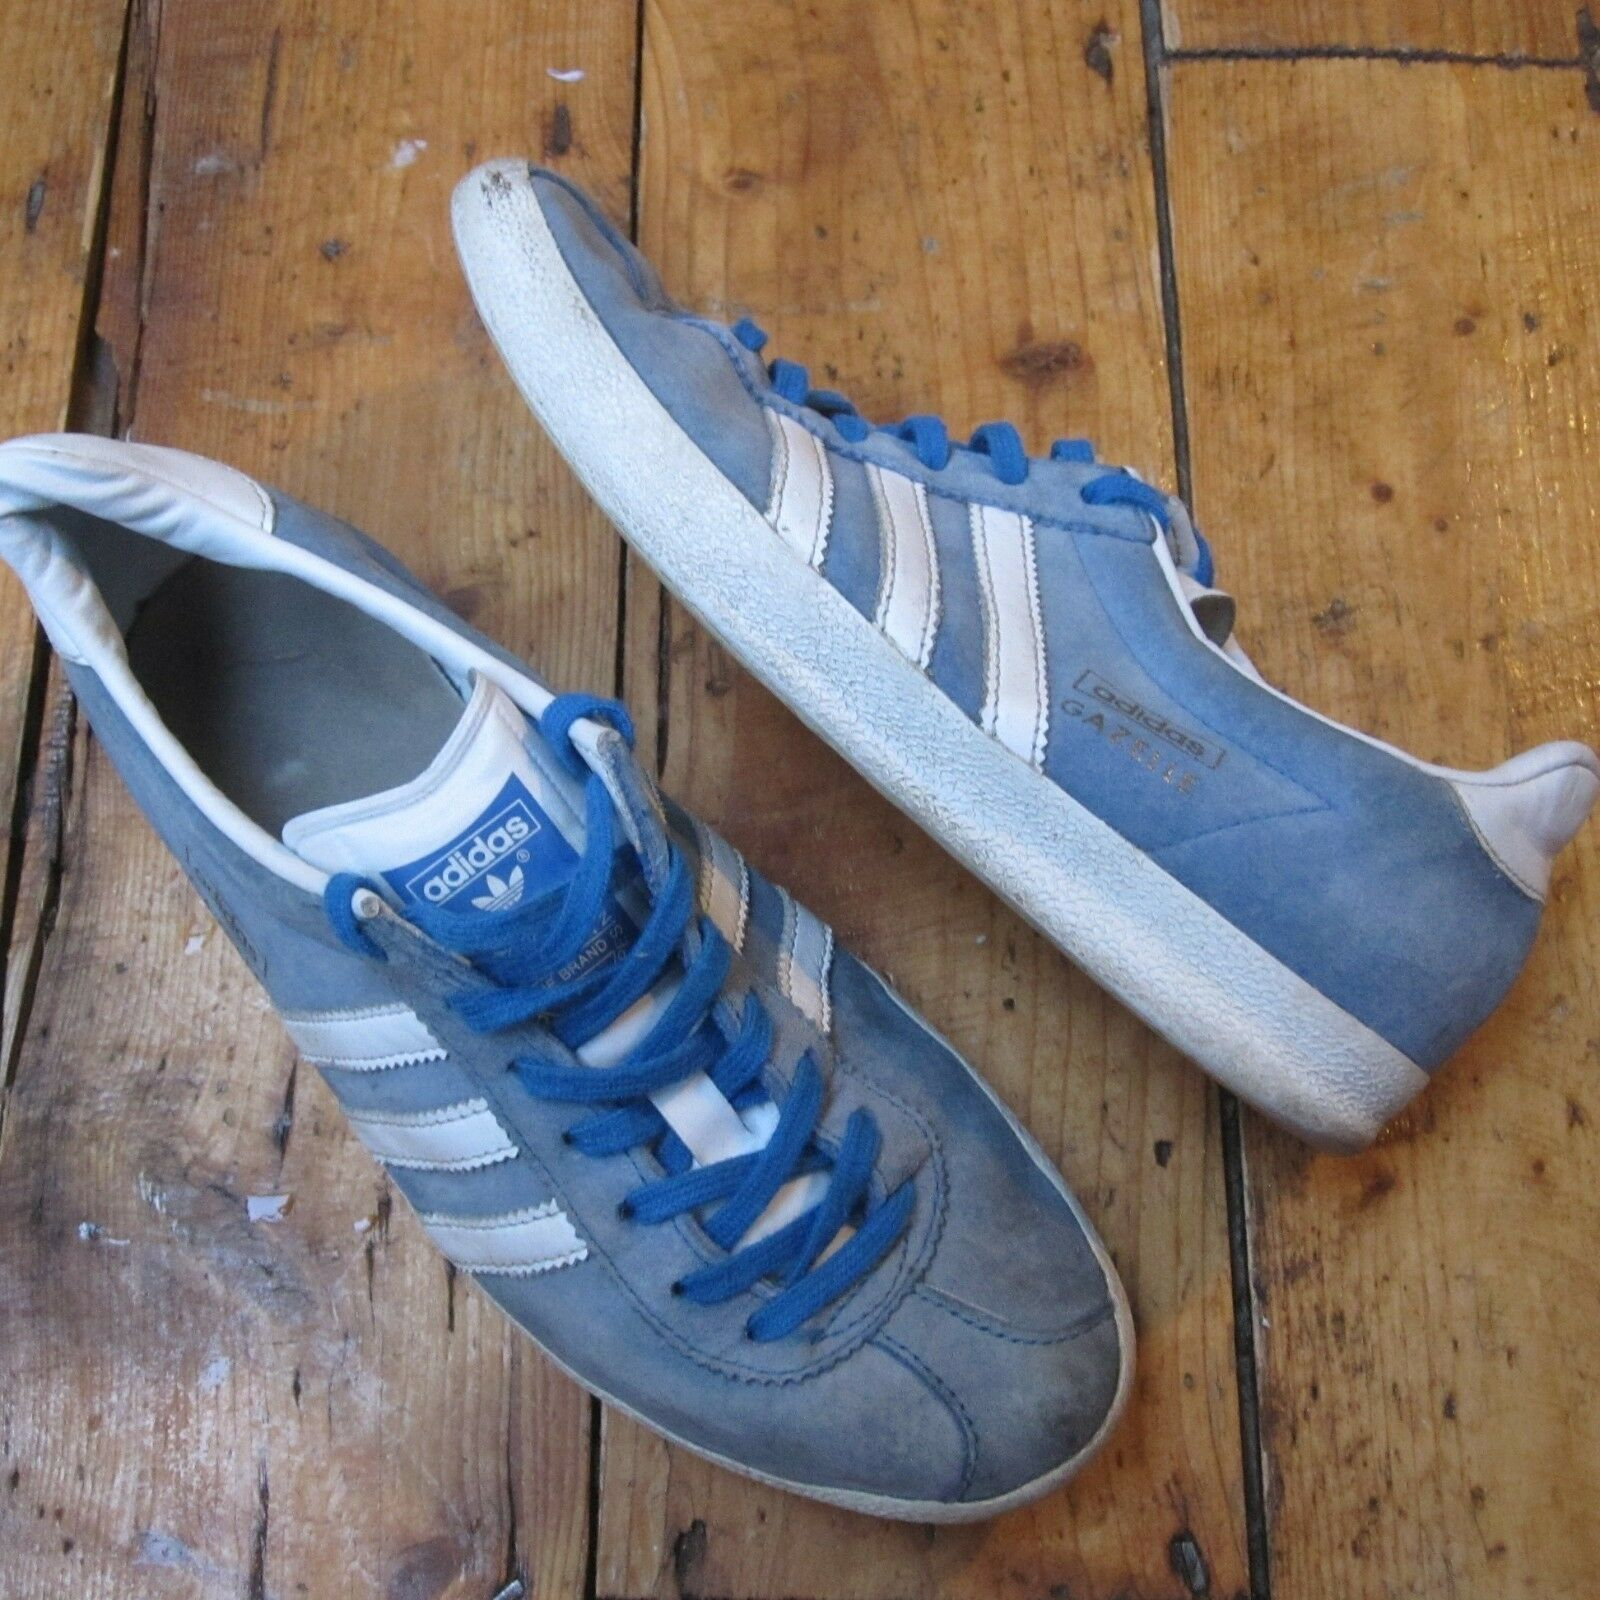 Adidas Originals Gazelle Trainers Size Suede Light Blue Men's UK Size Trainers 4 4a1d91